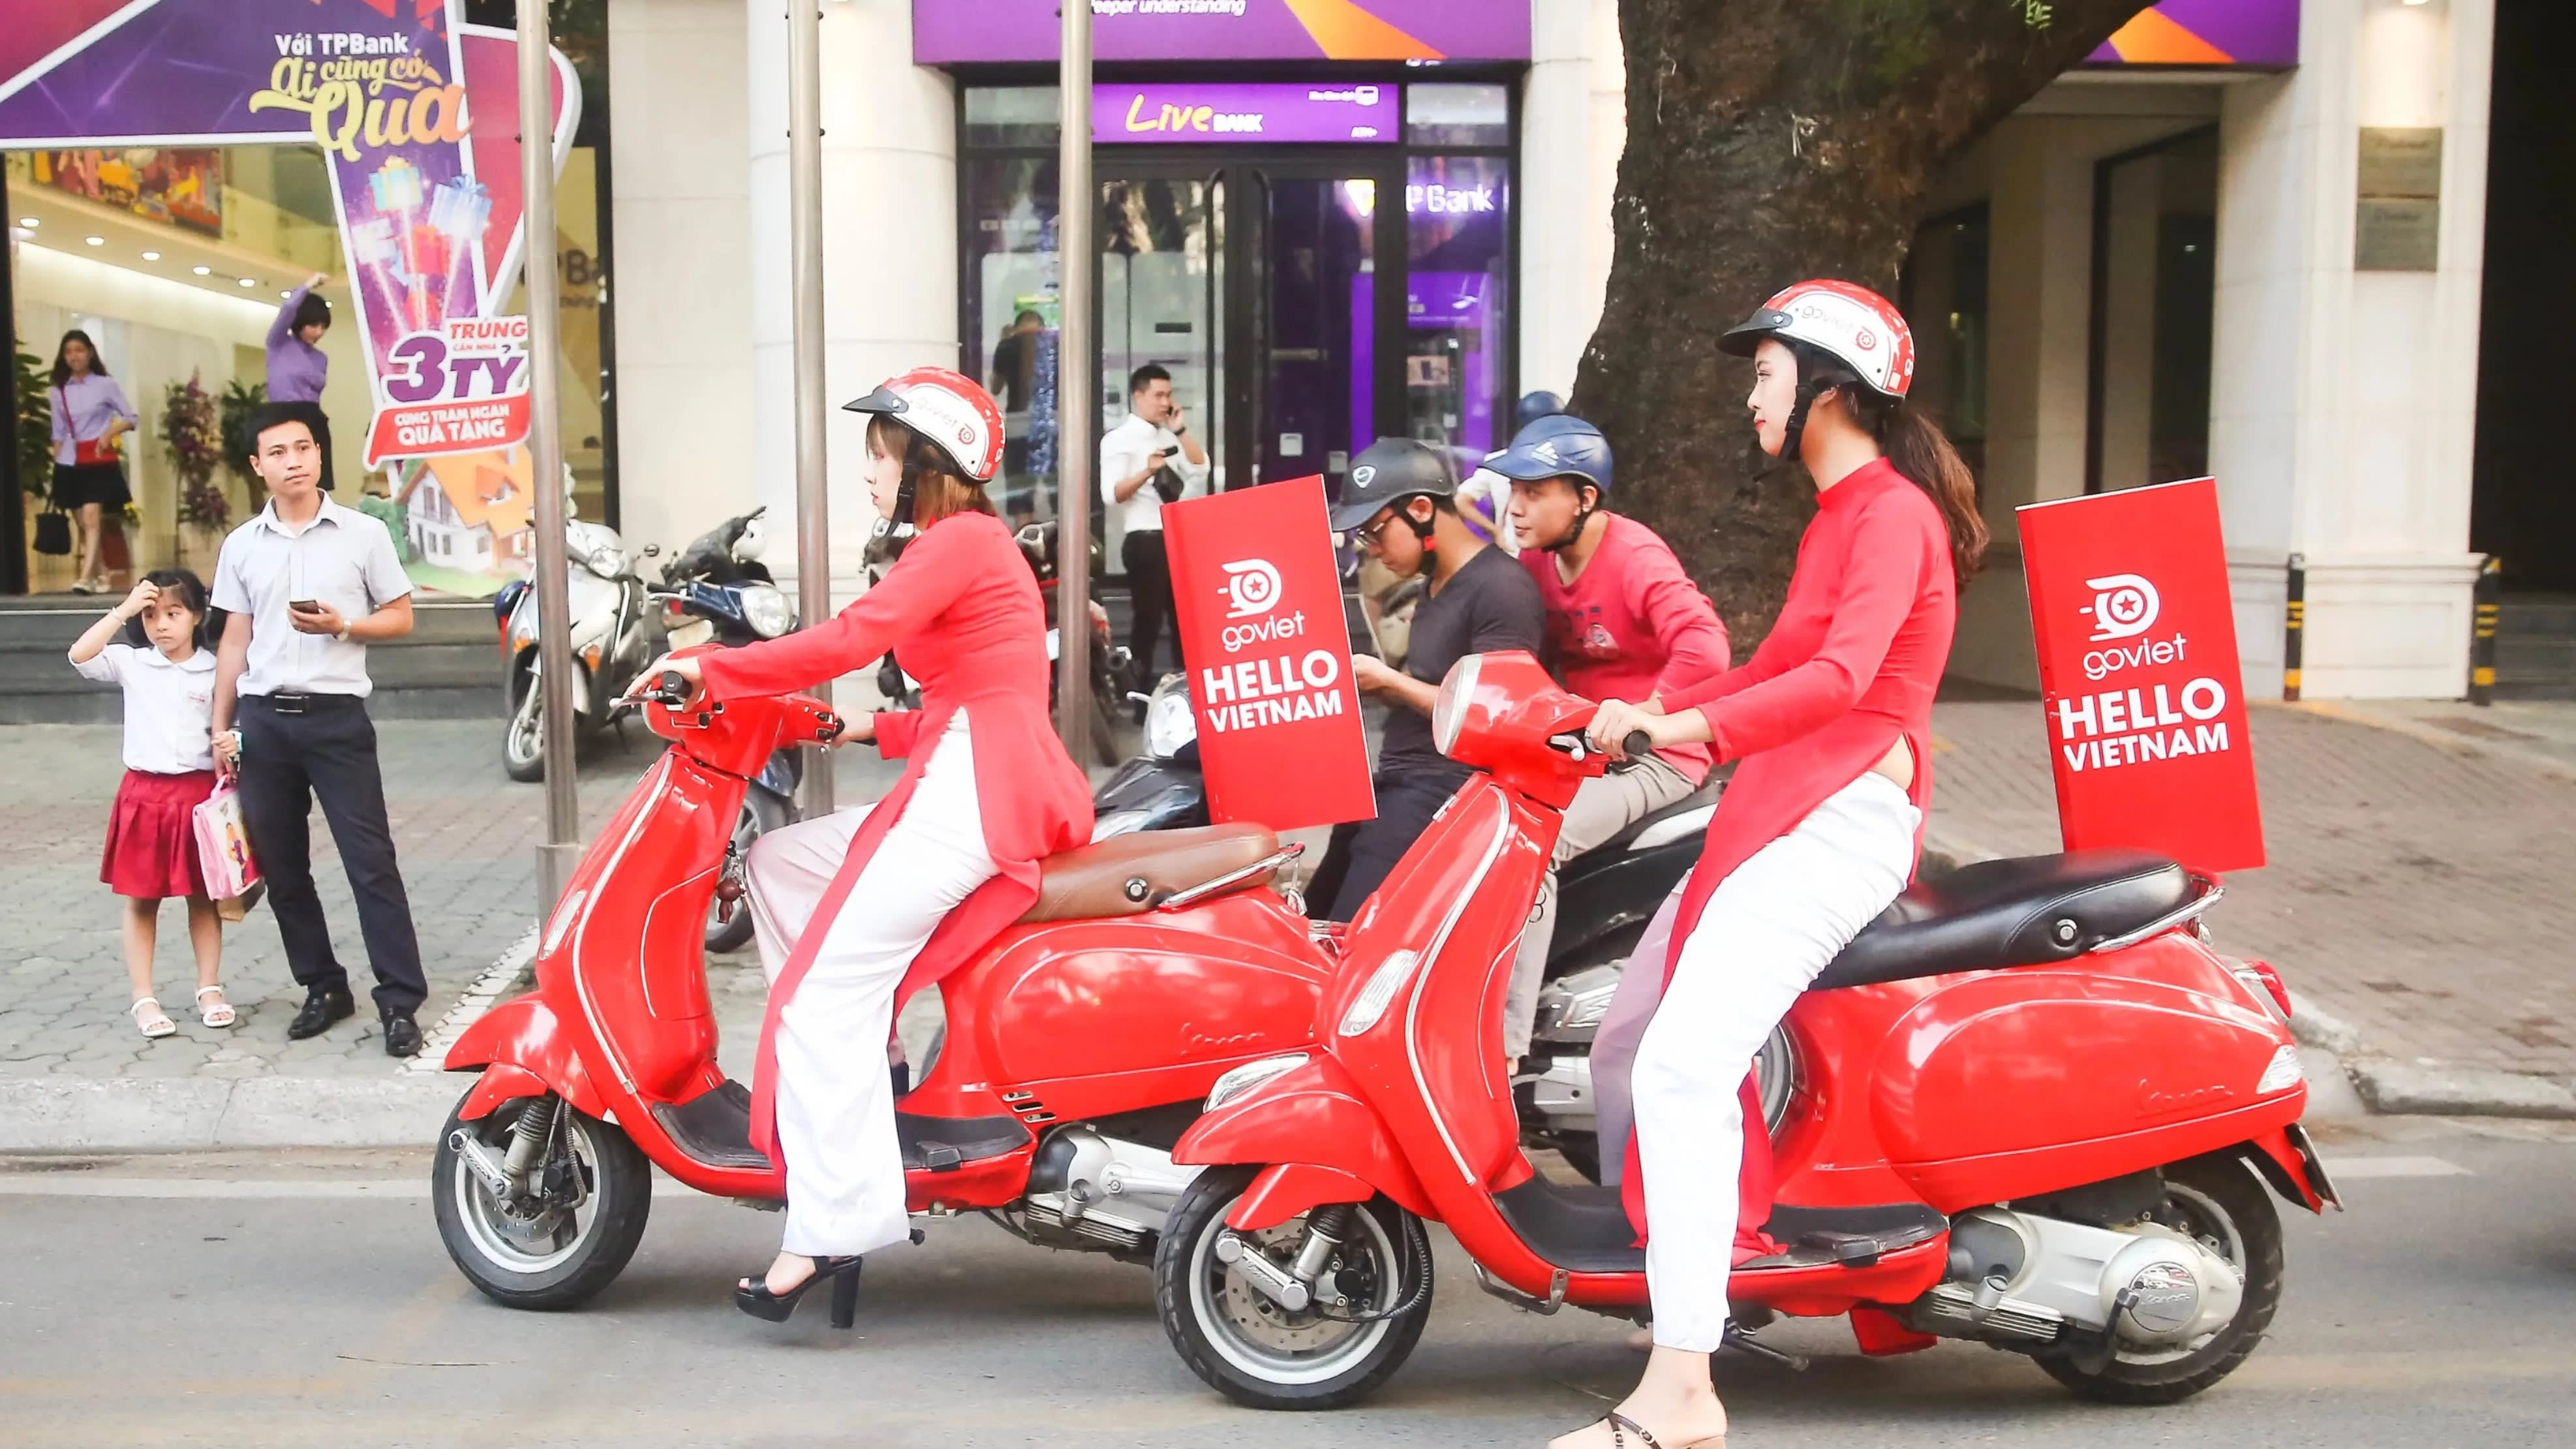 Vietnam startups gain on Indonesia and Singapore with new